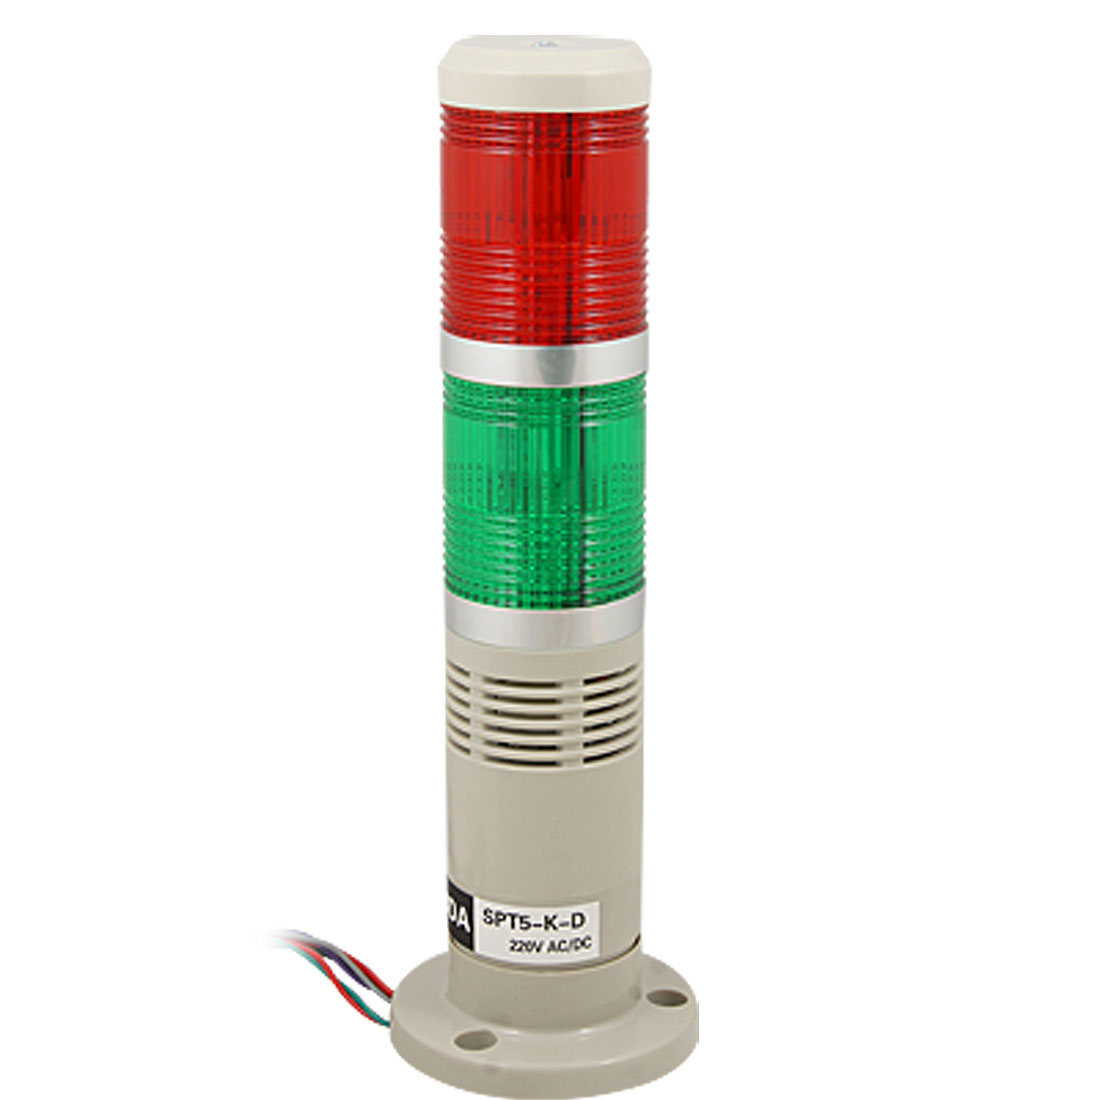 90dB AC 220V Industrial Red Green LED Signal Tower Buzzer Alarm Warning Flash Light